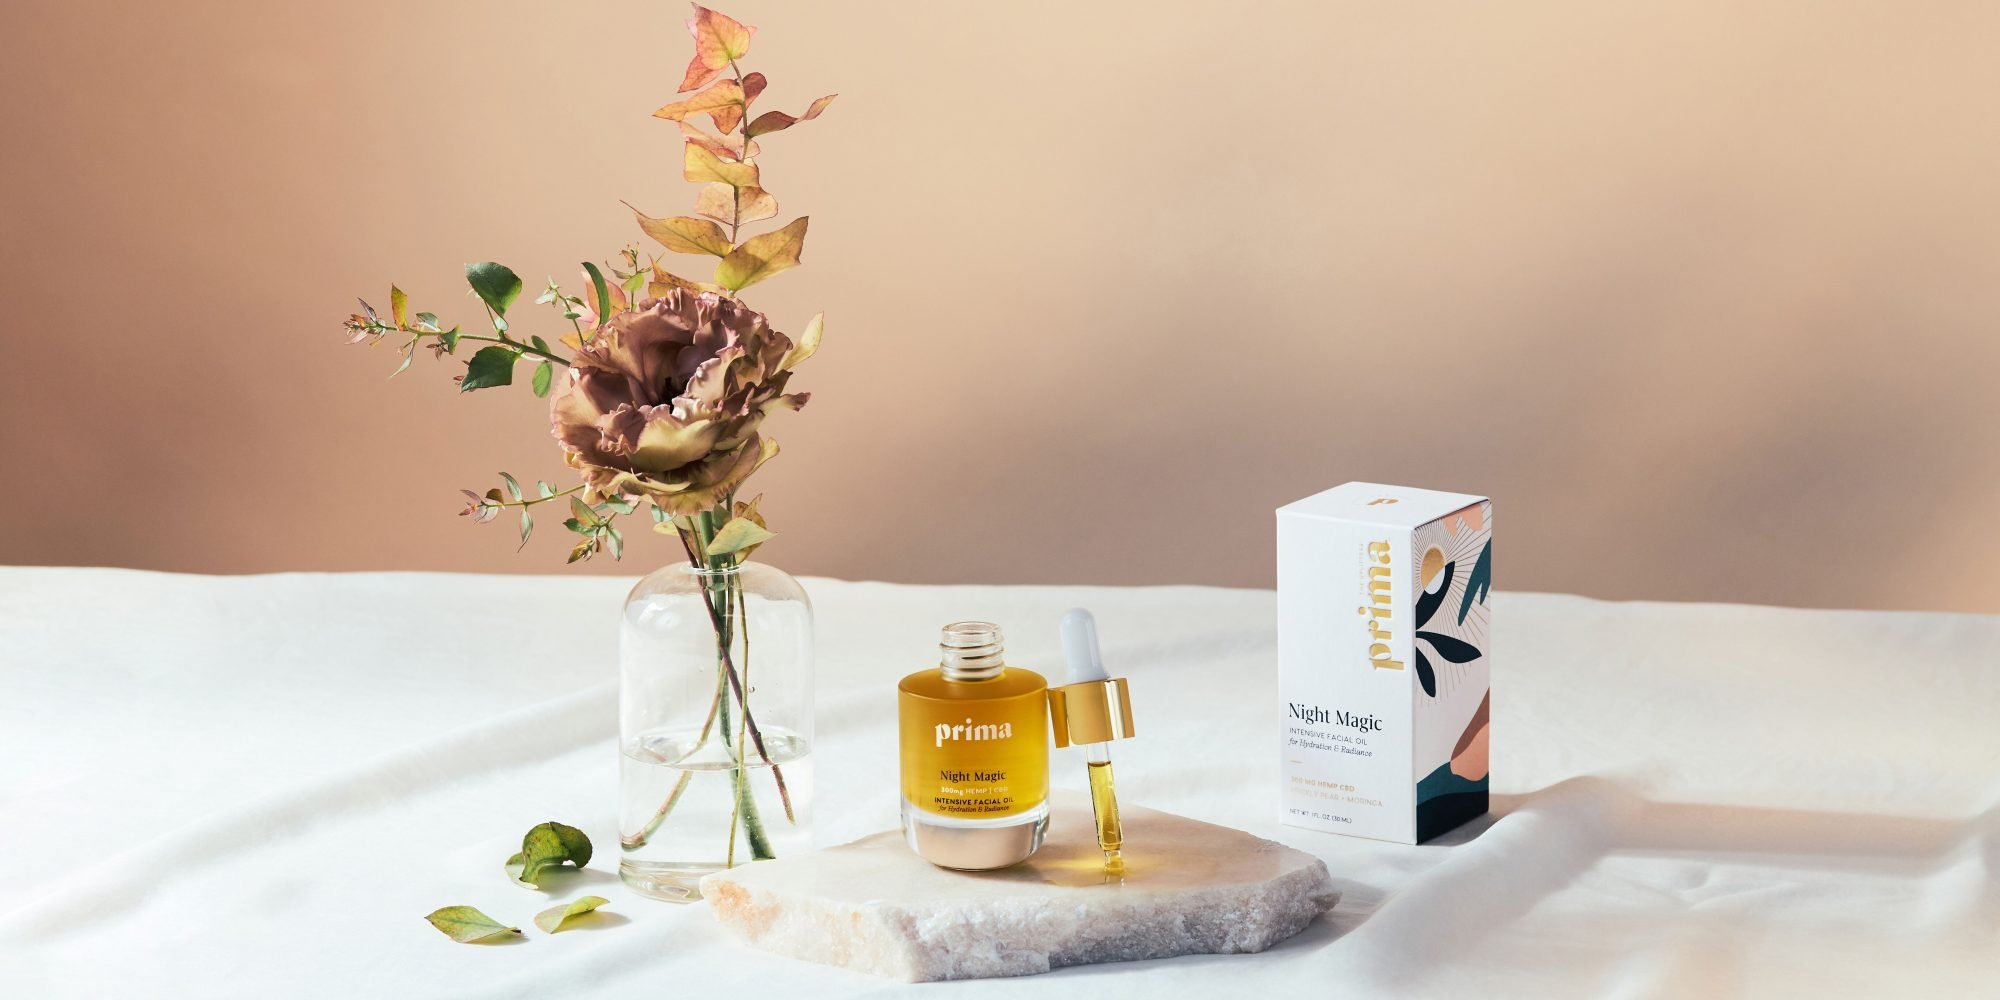 Sephora Partners With Prima On Product Launch And New CBD Standard